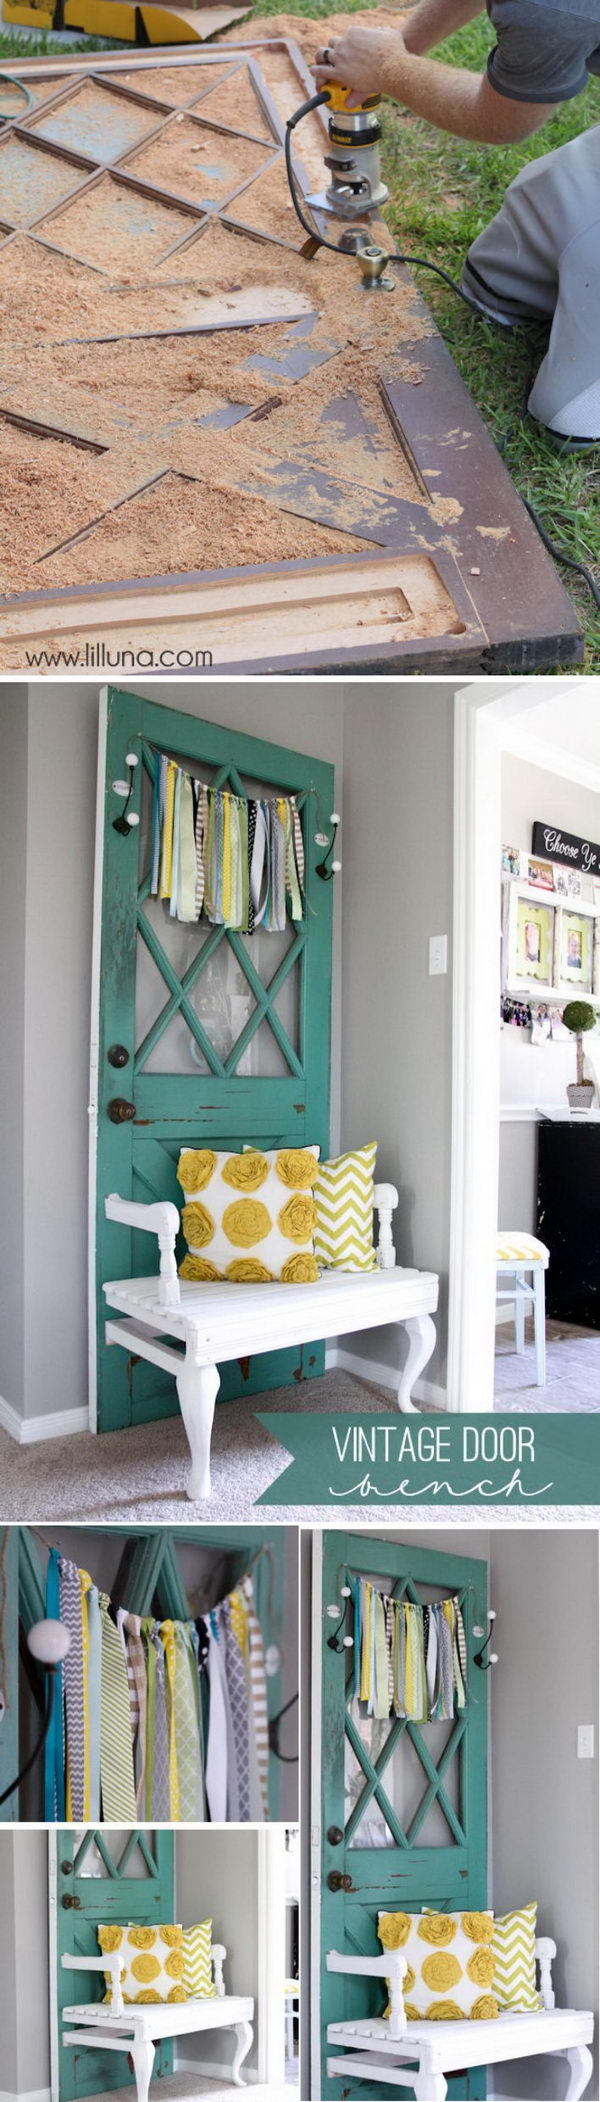 Reuse an Old Door to Make Vintage Door Bench.